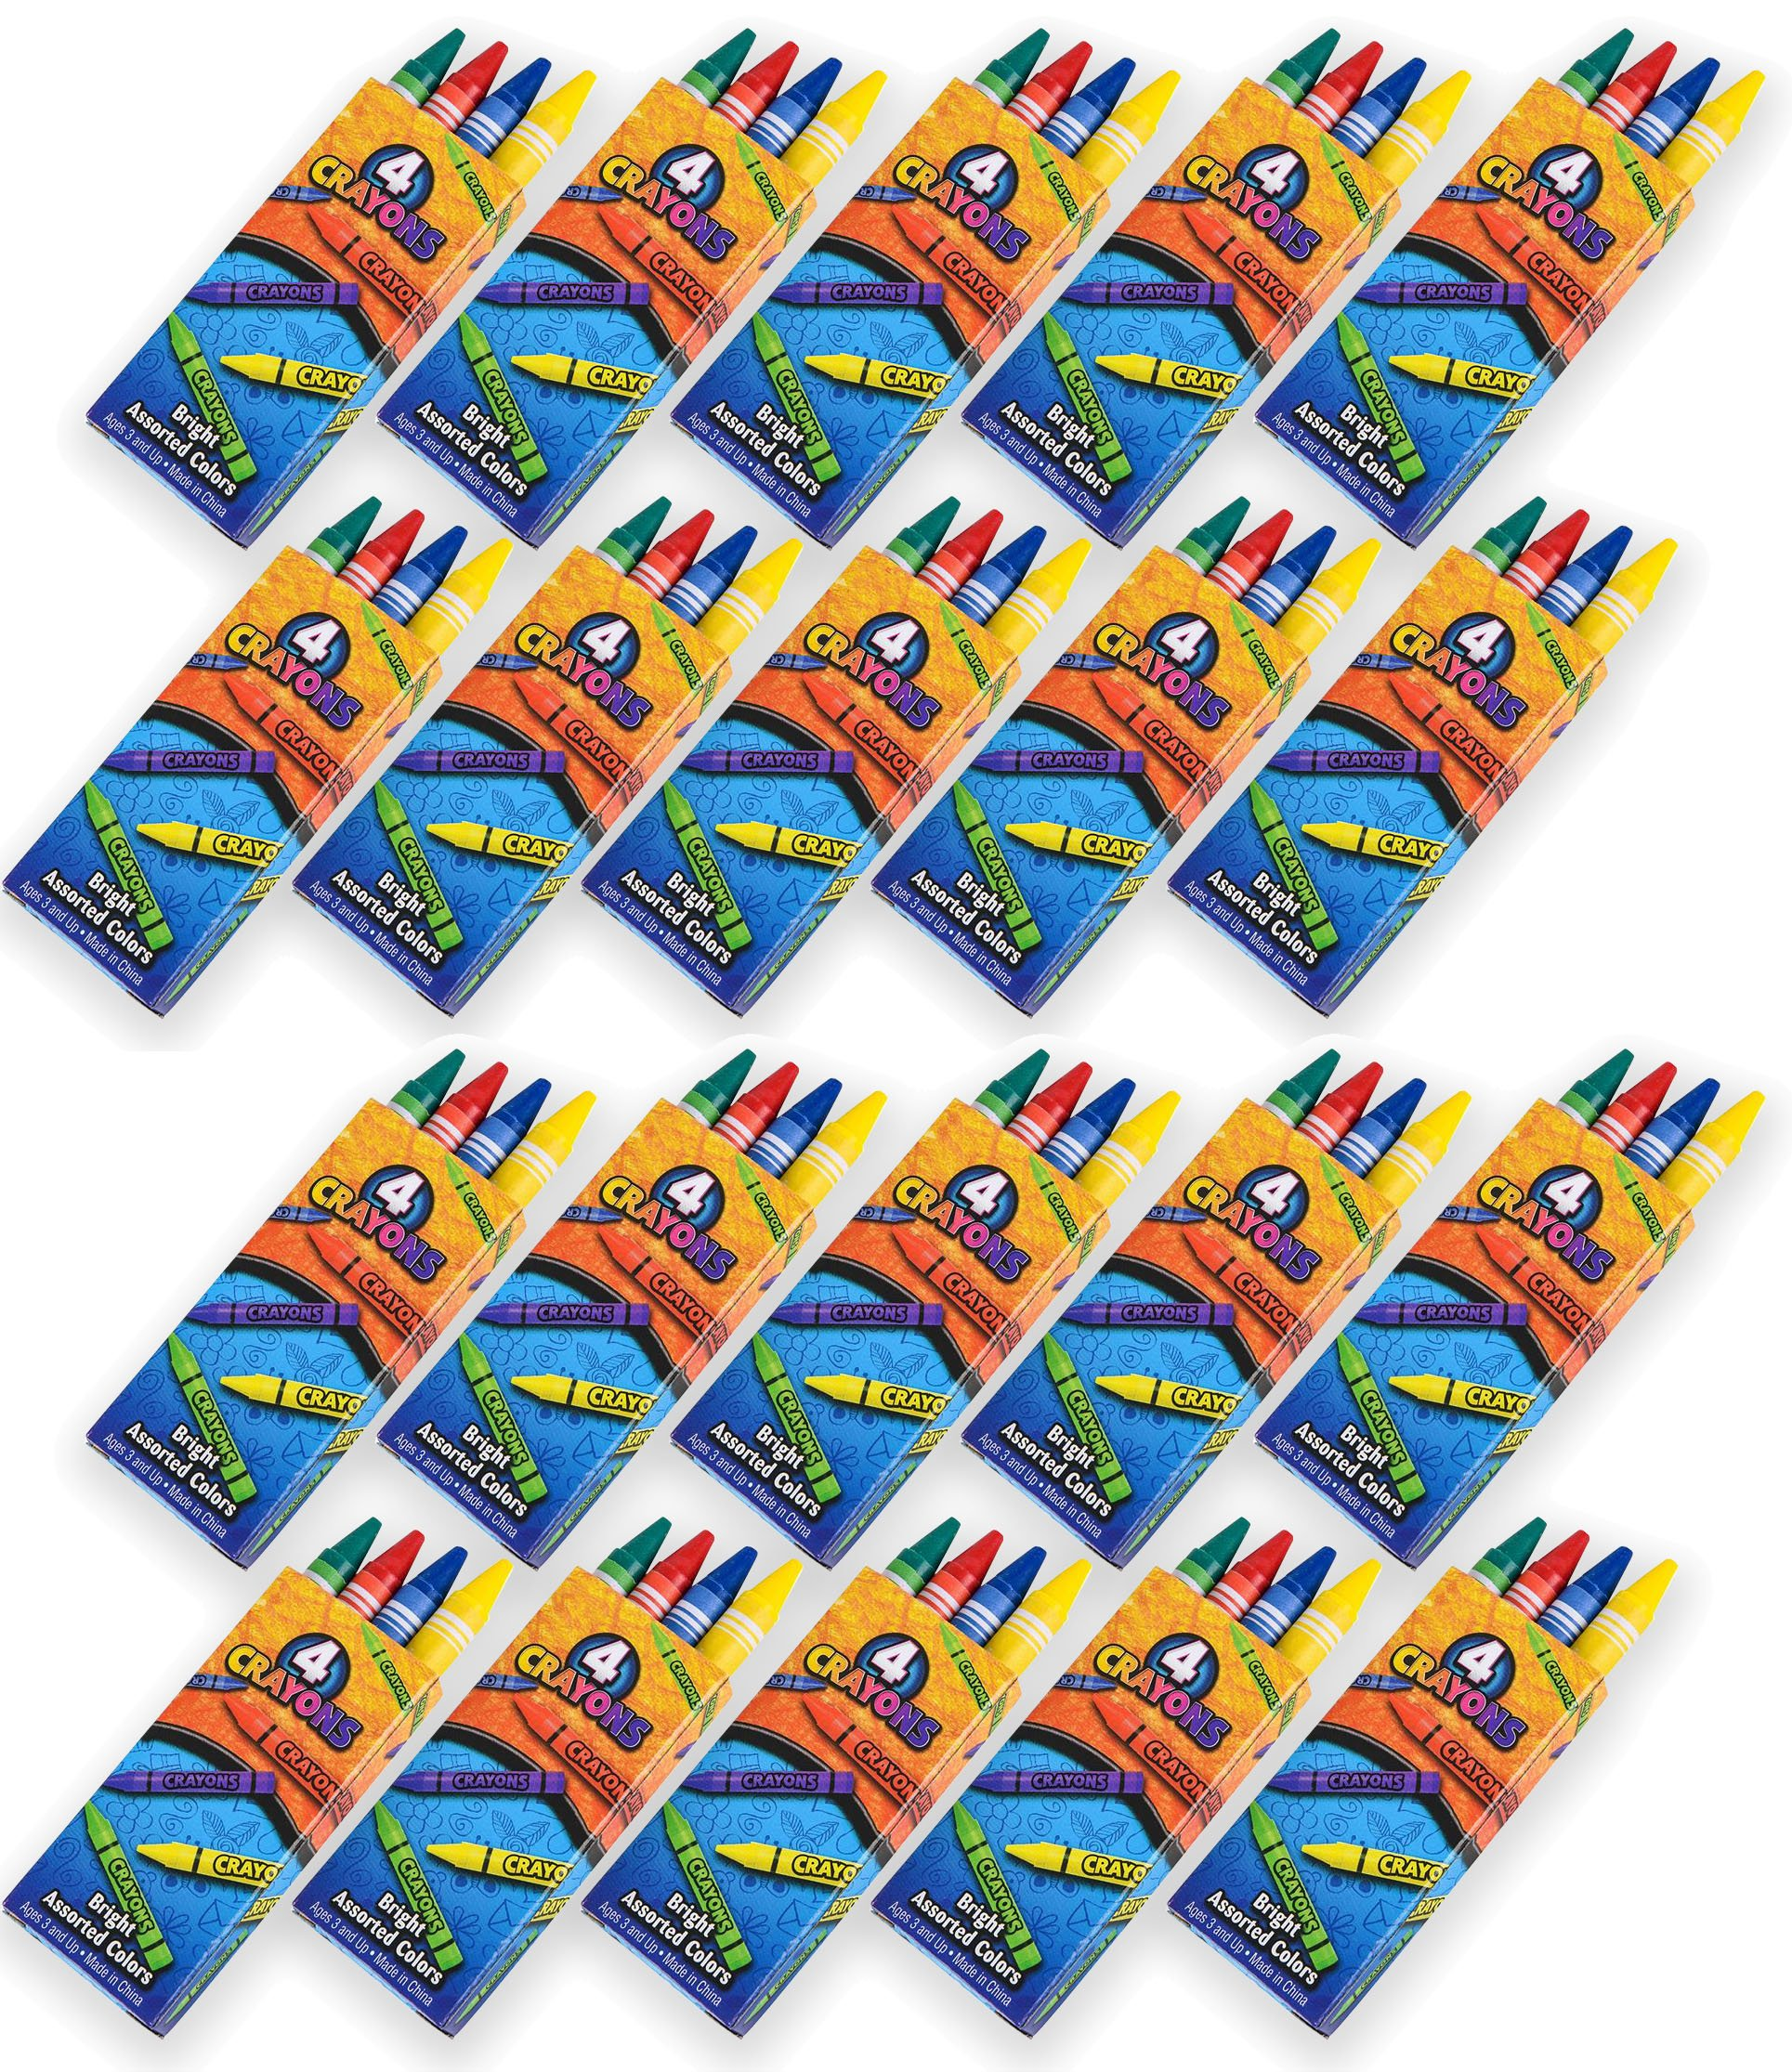 4E's Novelty 576 Crayons, 144 Packs of 4 Crayons for Kids Bulk -Non-Toxic- 4 Colors in Each Crayon Box, Premium Crayons, Great Party Favor, Arts and Crafts Supplies for Toddlers, Goodie Bag Filler